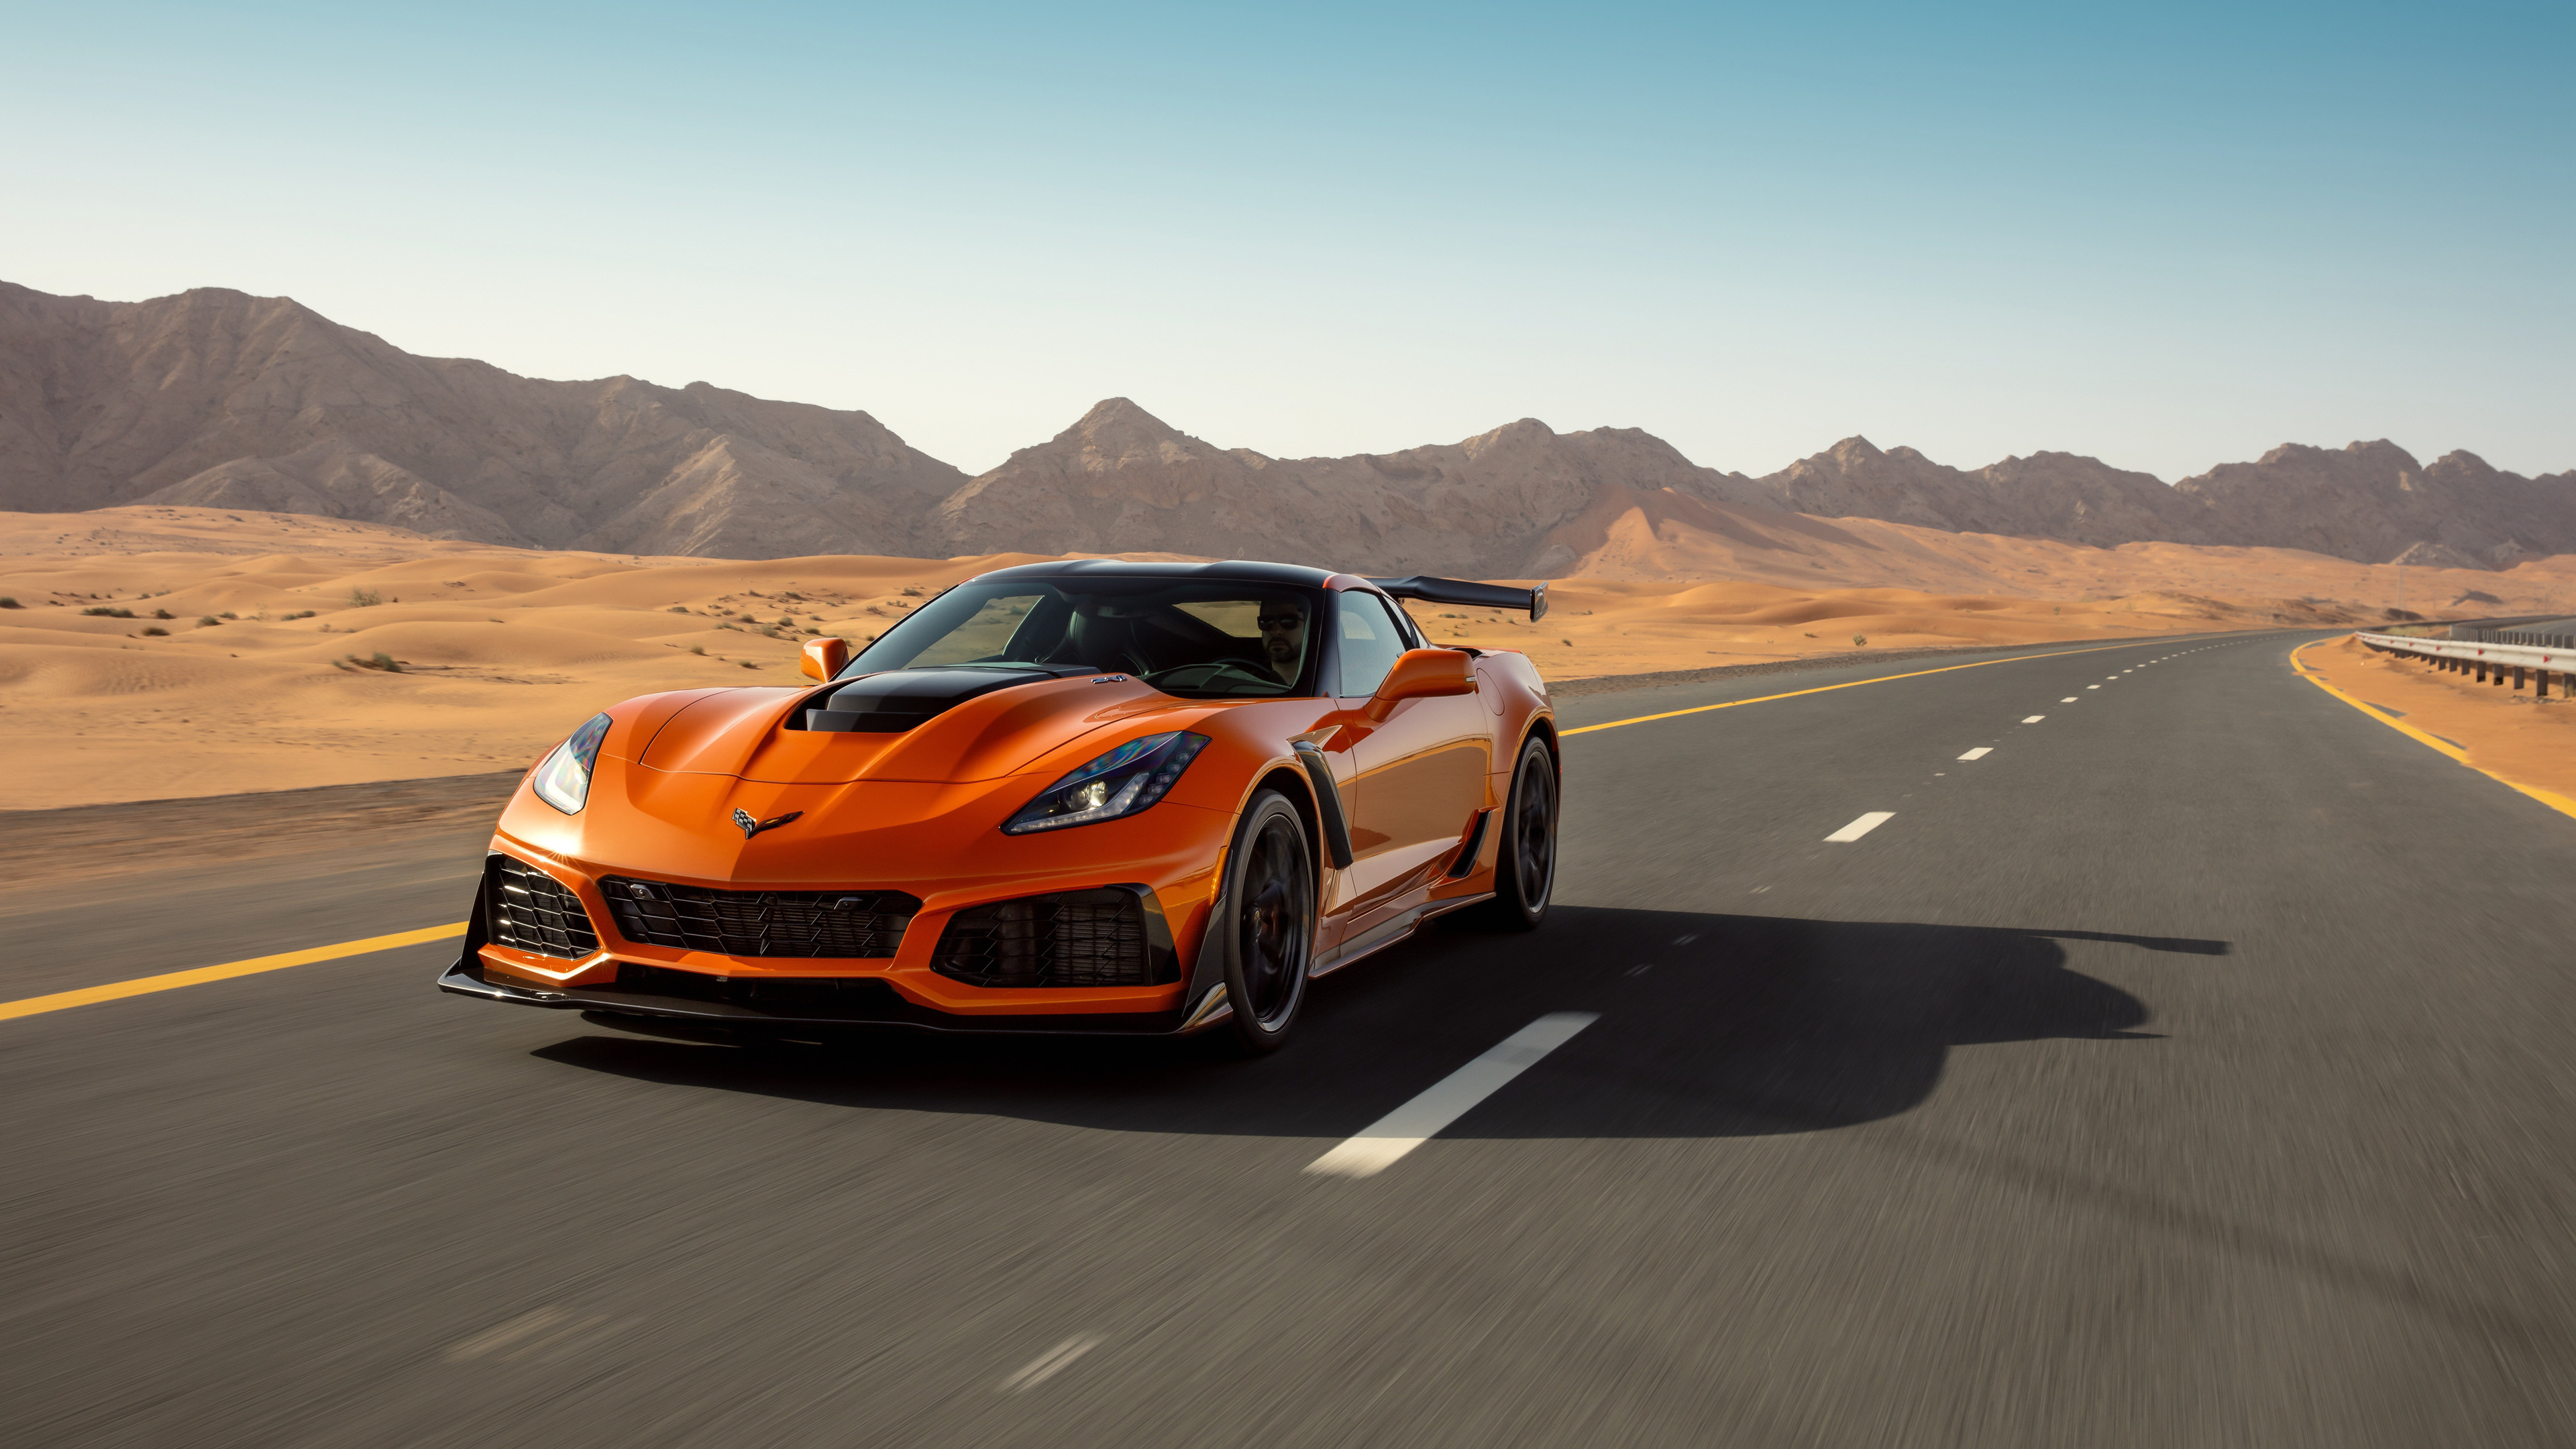 chevrolet corvette zr1 2019 front view 1539111775 - Chevrolet Corvette ZR1 2019 Front View - hd-wallpapers, corvette wallpapers, chevrolet wallpapers, chevrolet corvette zr1 wallpapers, cars wallpapers, 4k-wallpapers, 2019 cars wallpapers